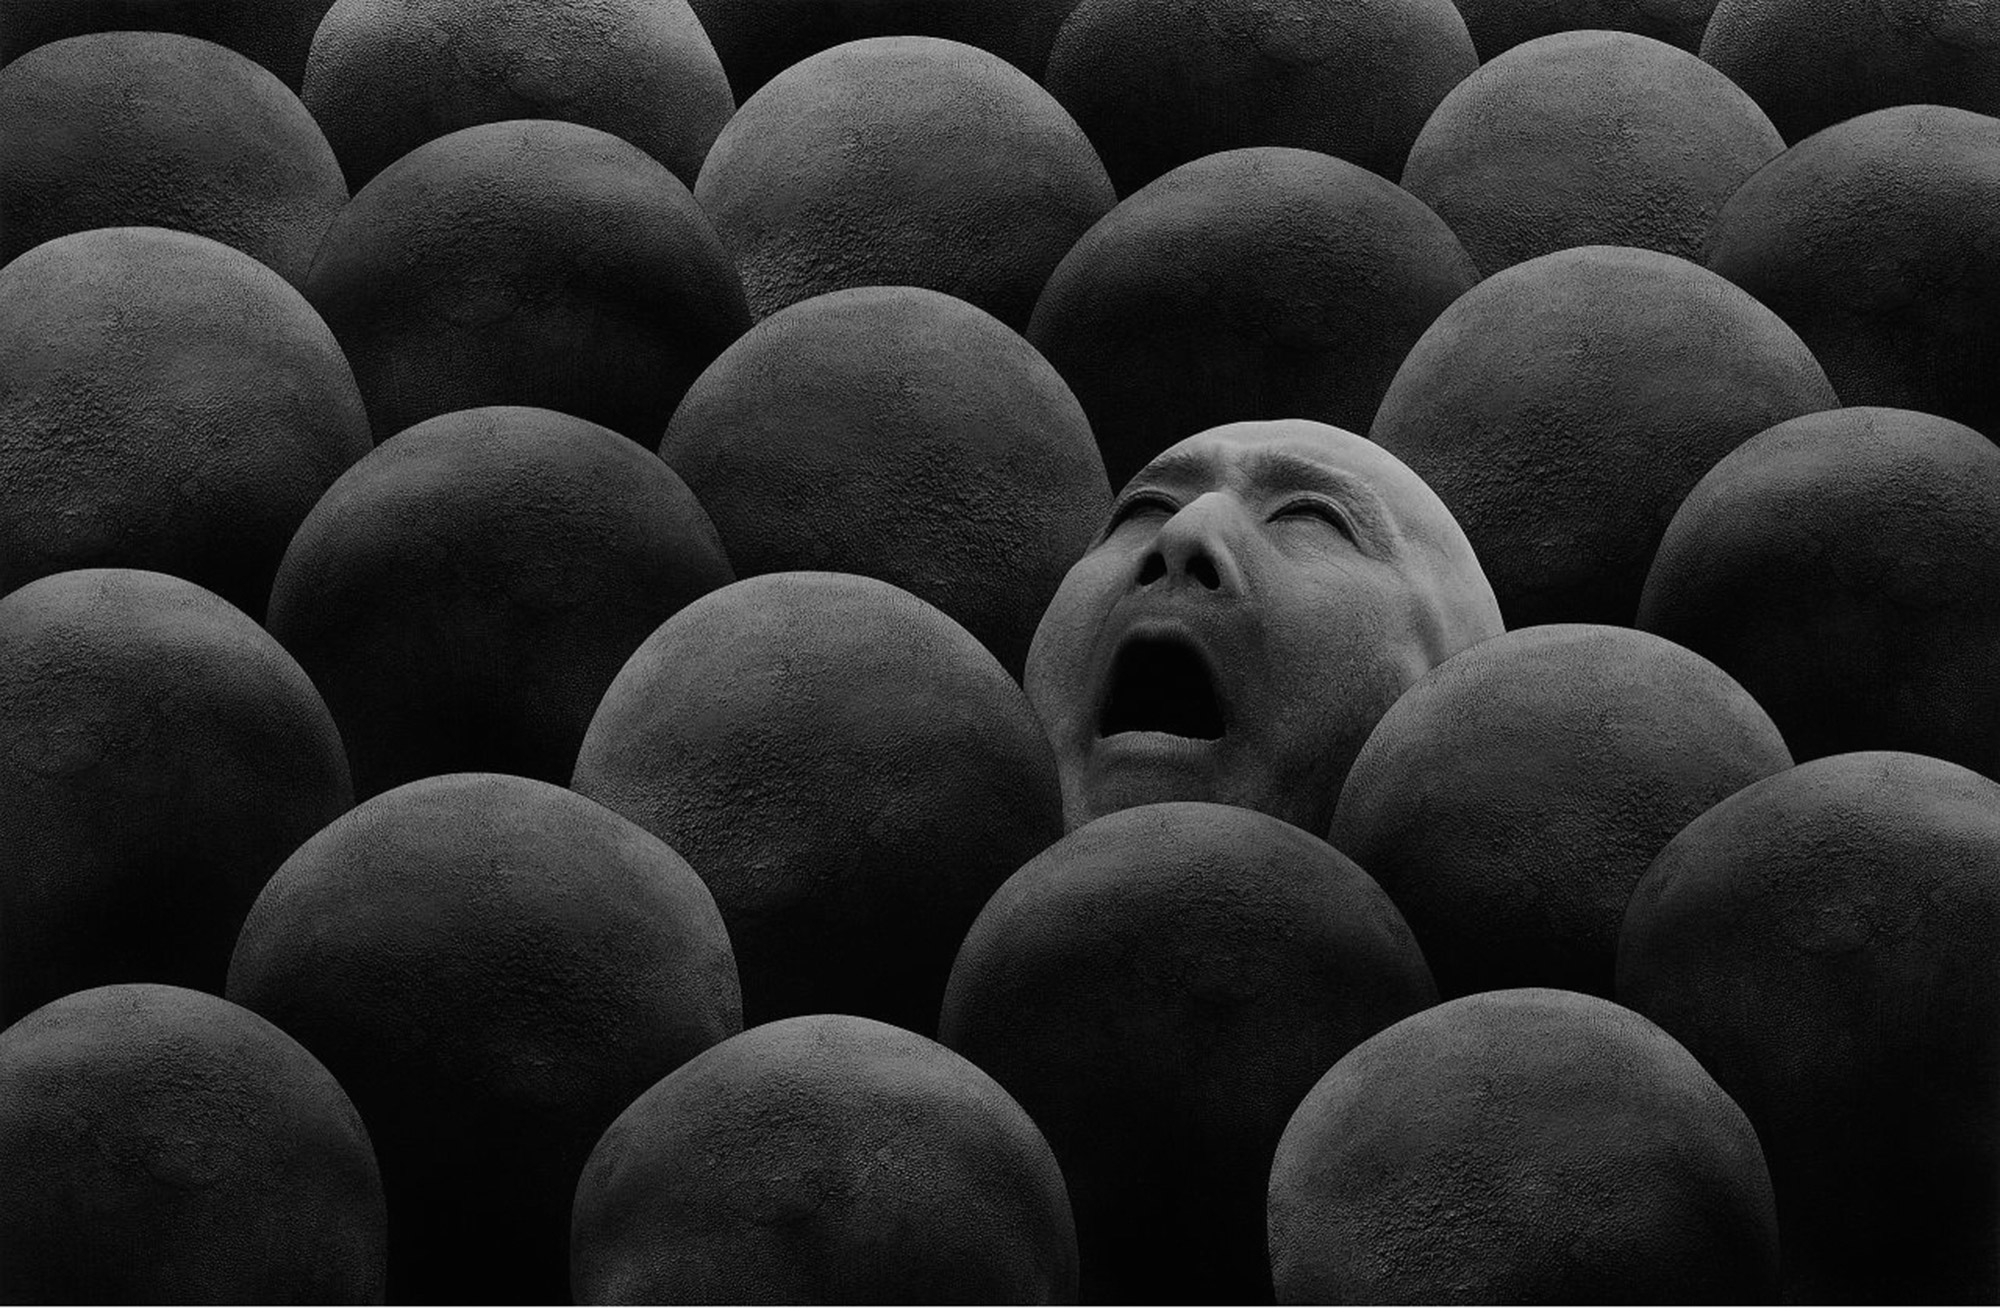 Misha Gordin - screaming face among bald heads